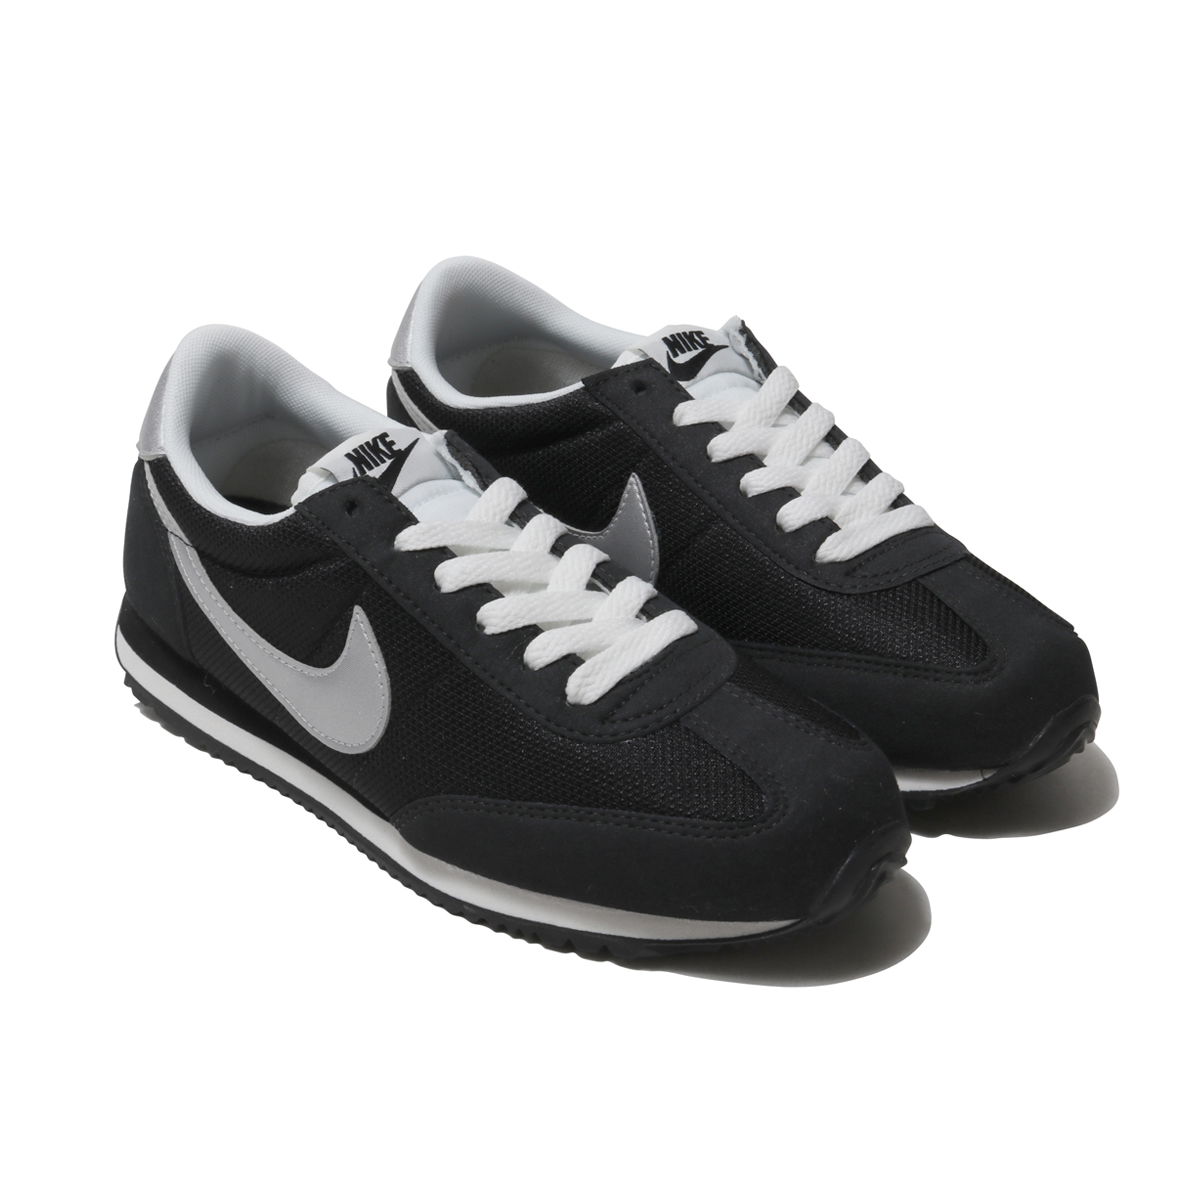 74e6c6bd36aa94 The women Nike Oceania textile shoes succeed to an attractive classic  design of Nike. It is most suitable for every everyday scene with a basic  style ...